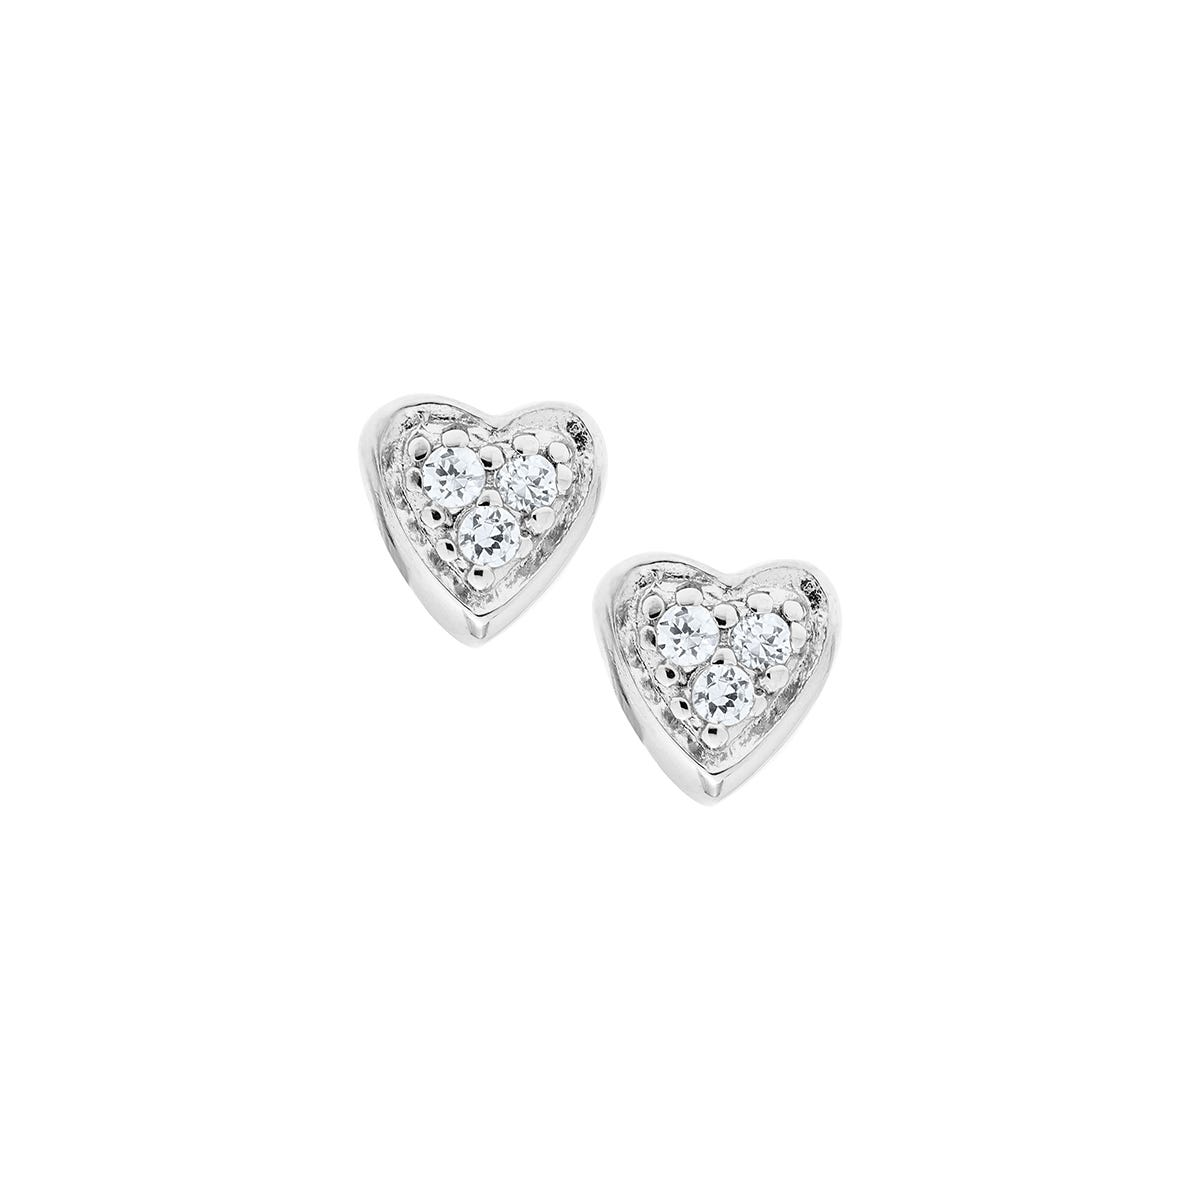 Baby & Children's Crystal Heart Screw Back Earrings in Sterling Silver